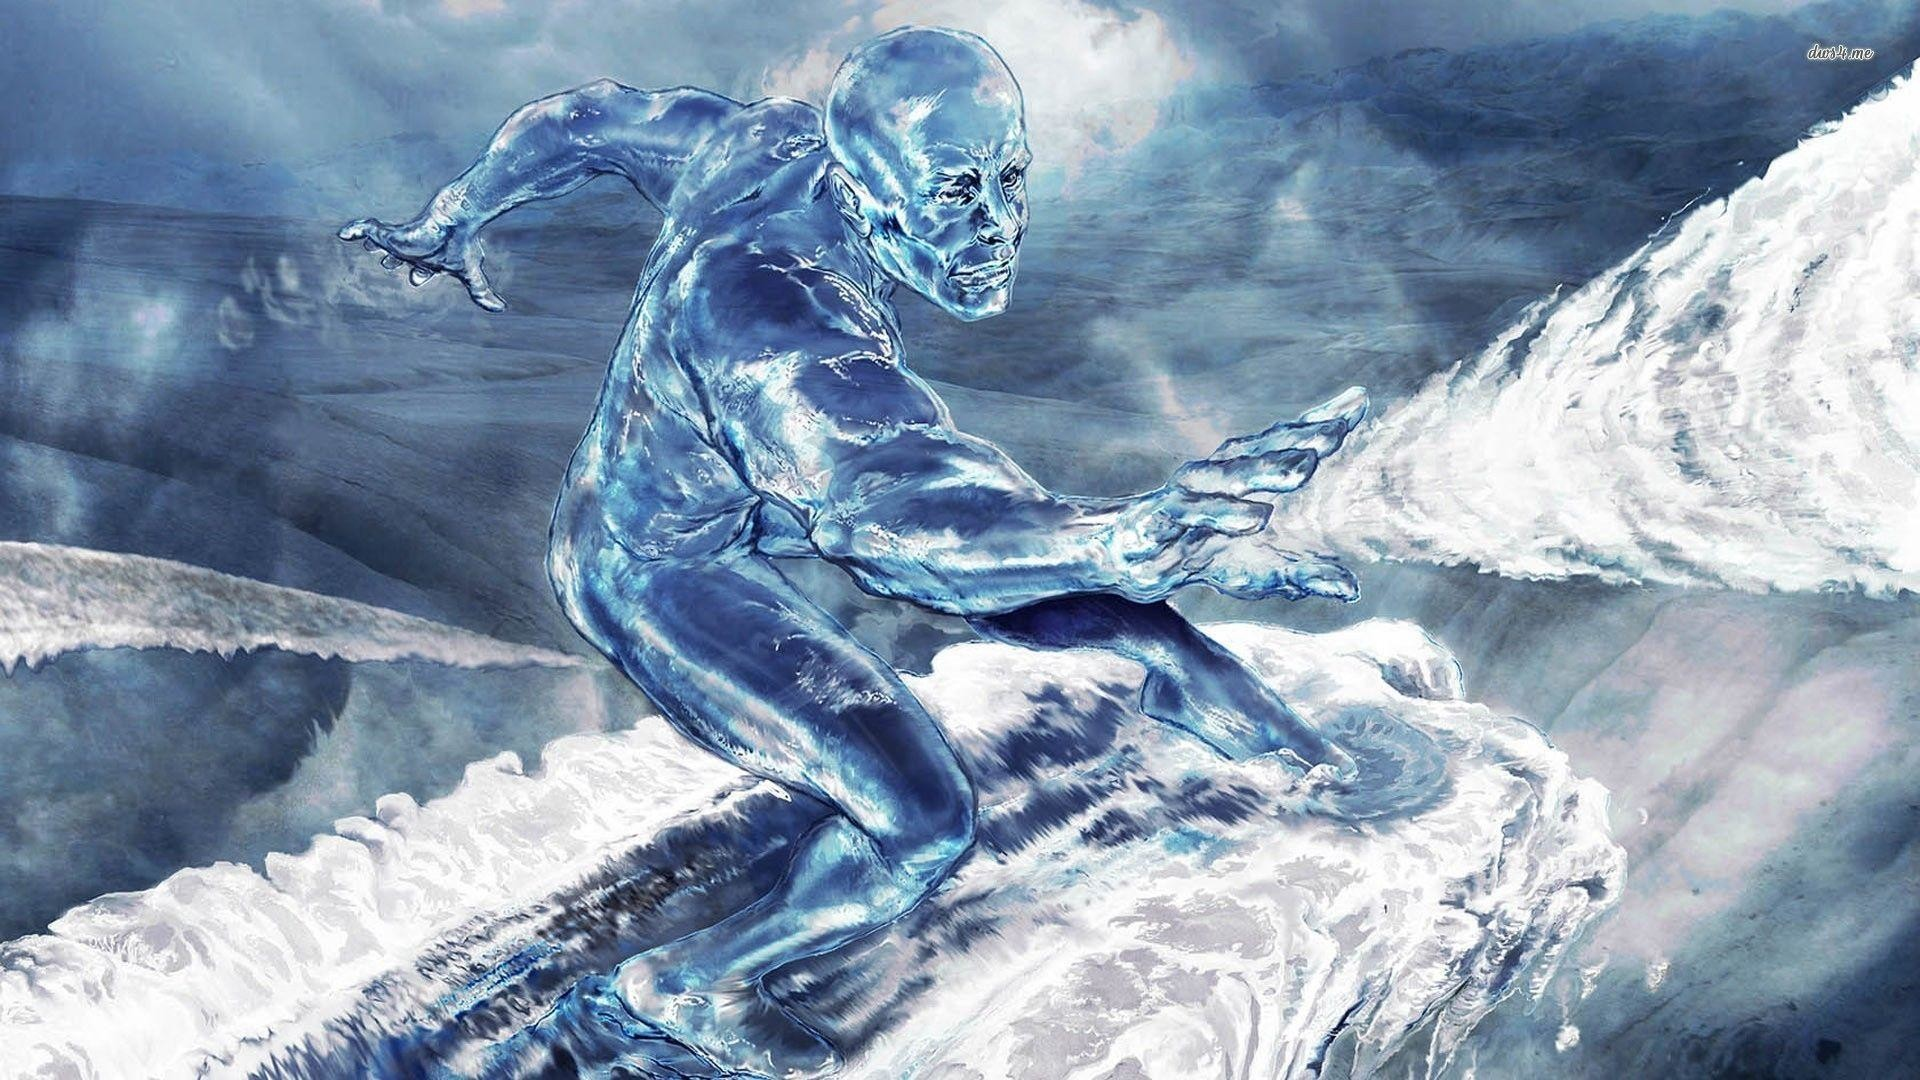 Iceman Wallpaper 55 images 1920x1080